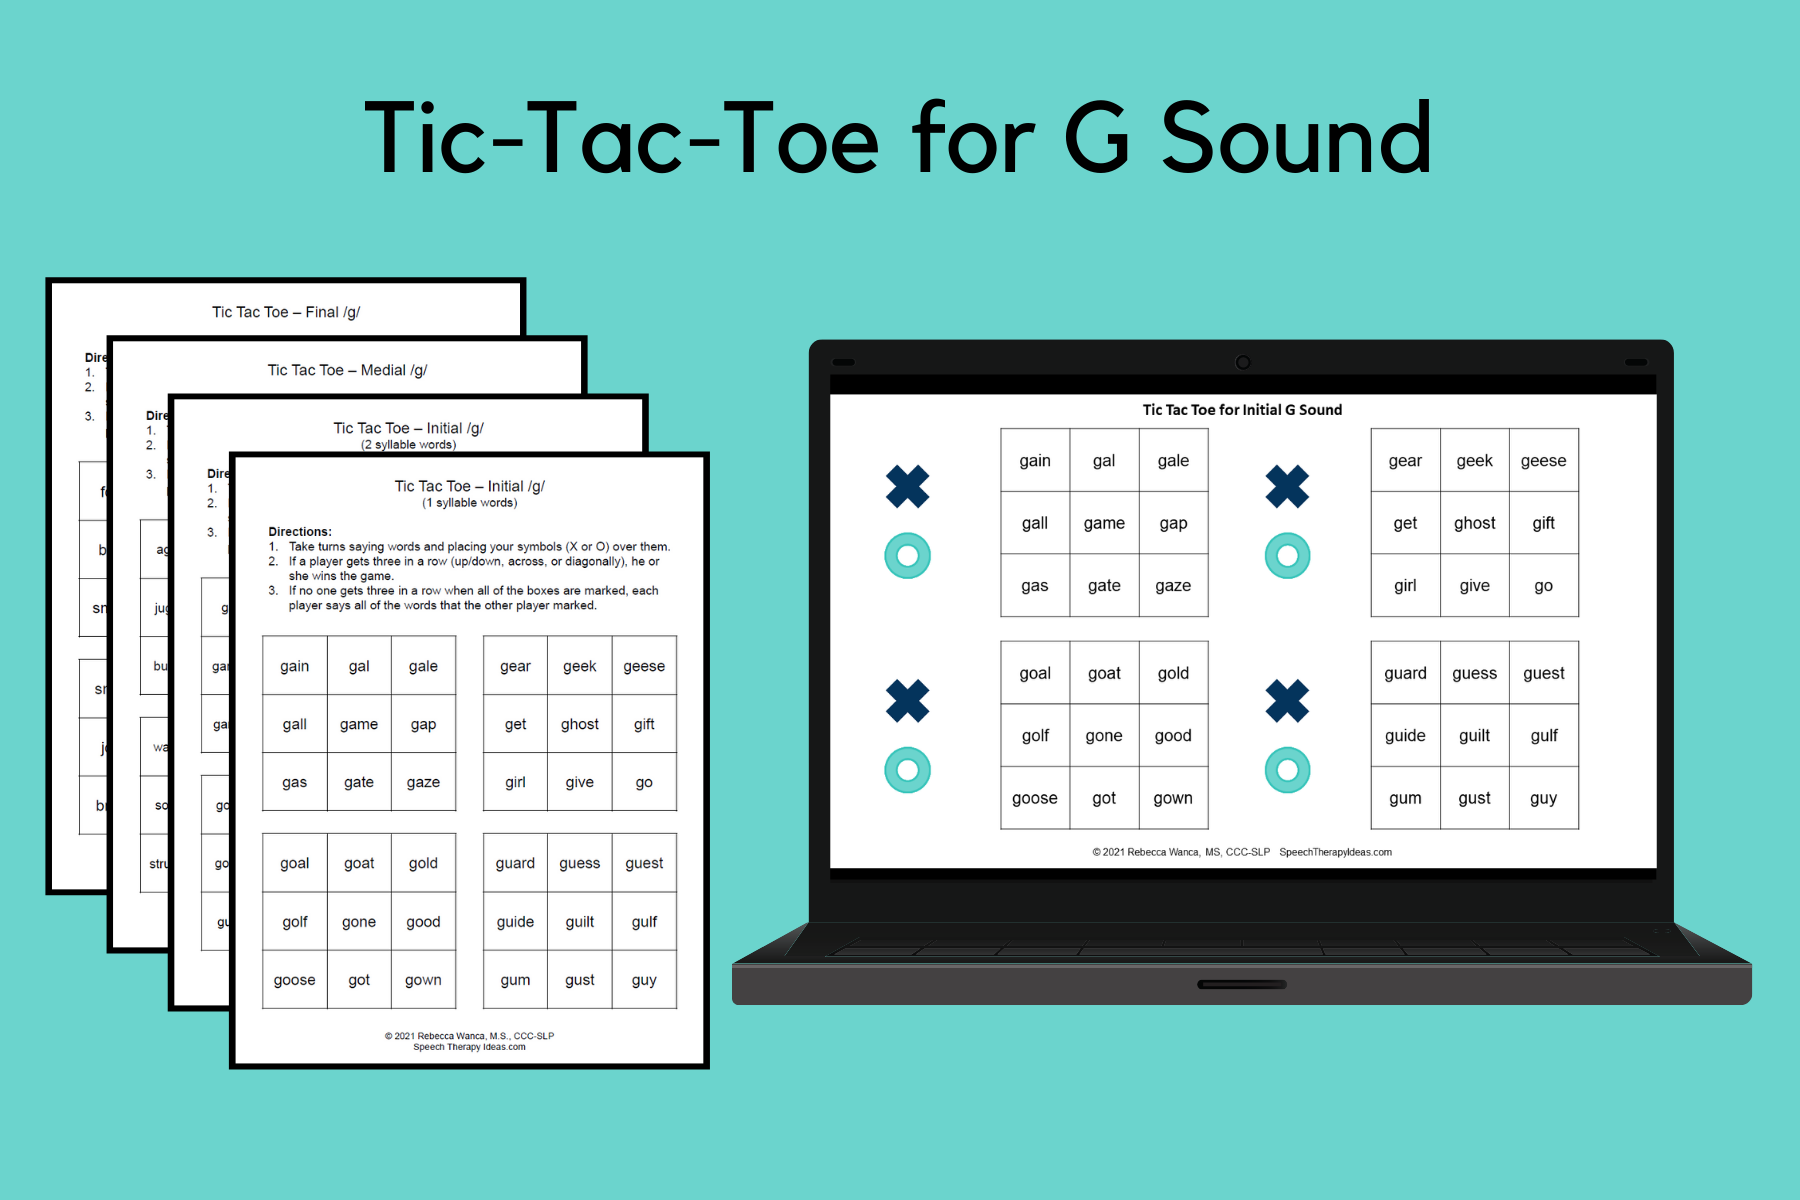 Tic-Tac-Toe Games for G Sound